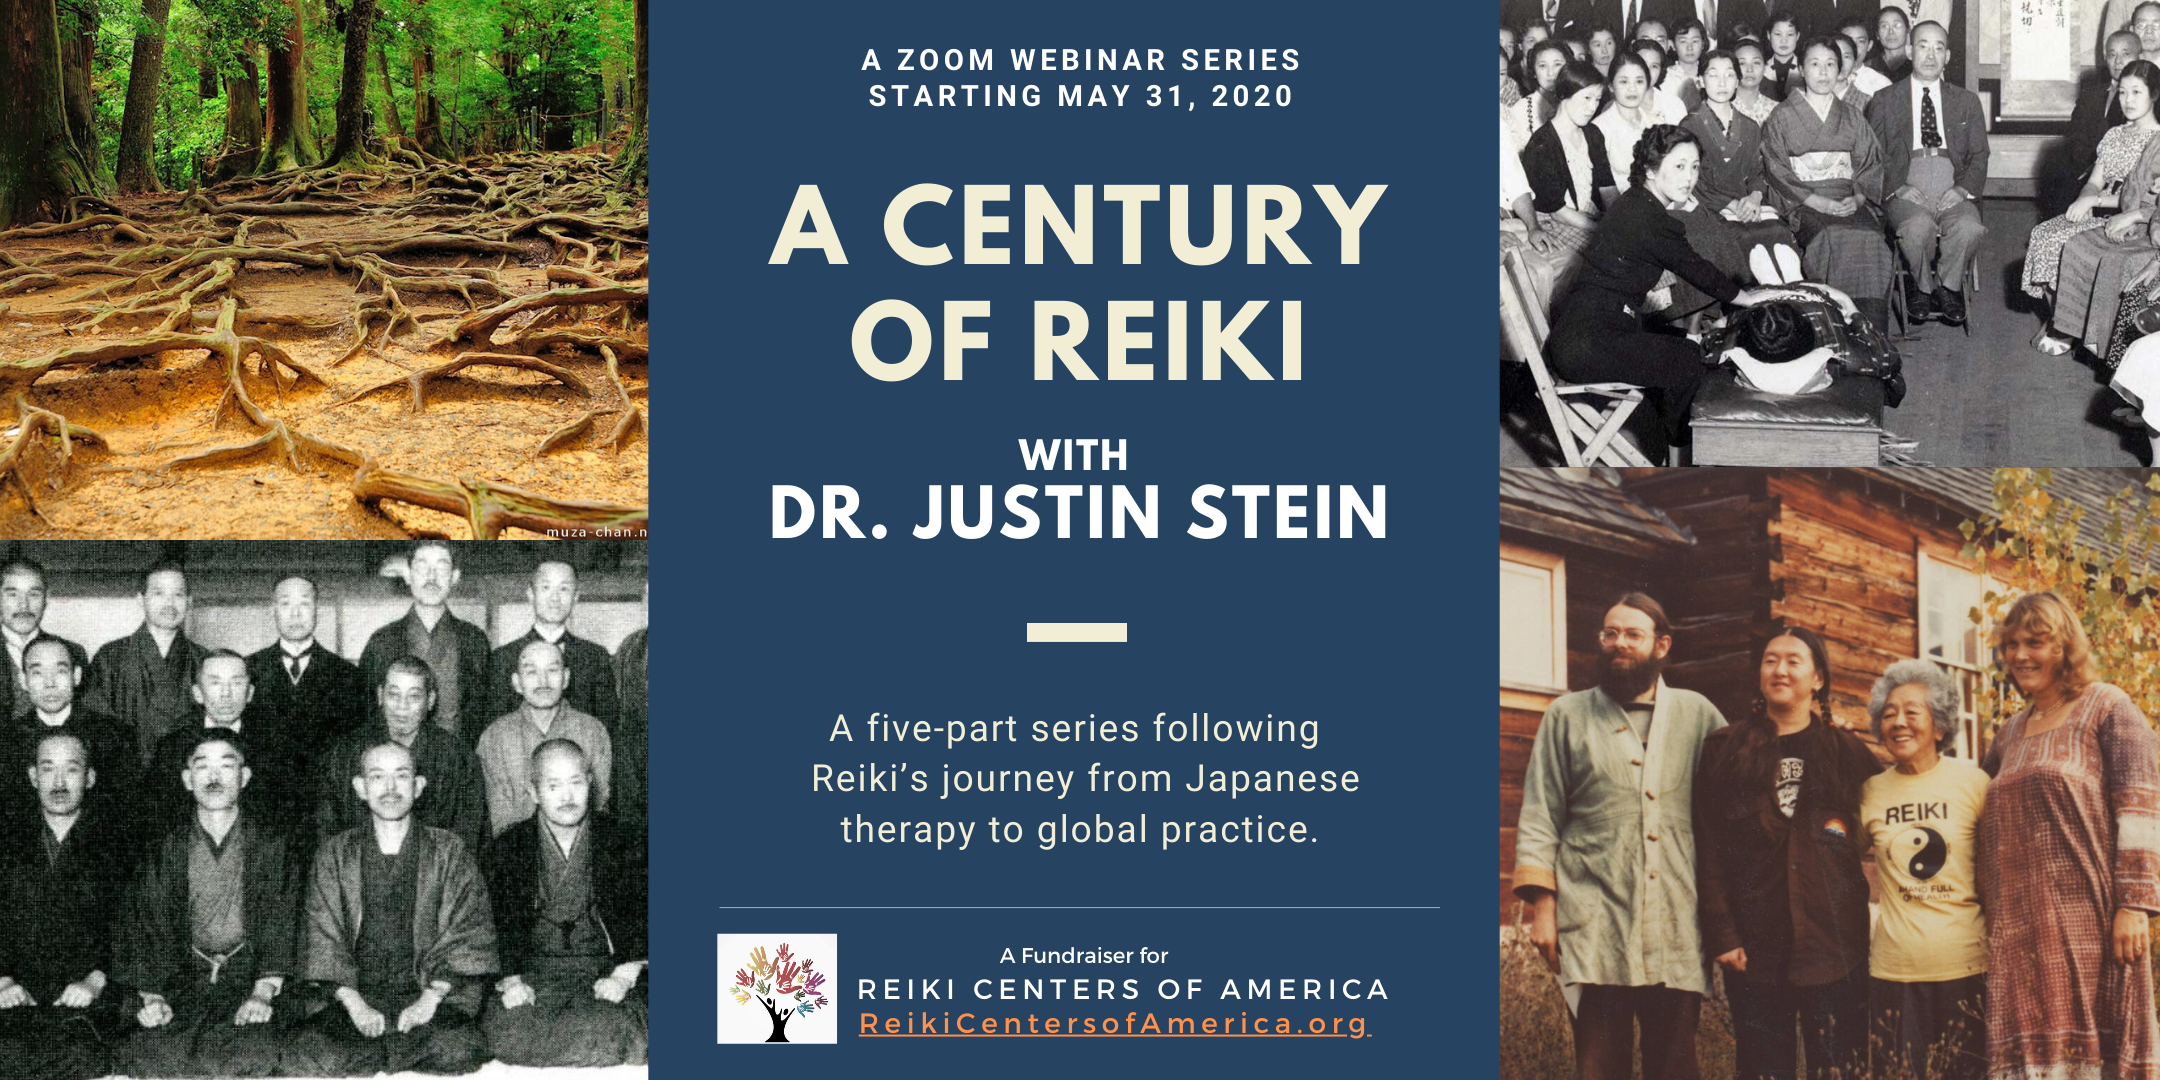 A Century of Reiki: A five part Webinar series hosted by Dr. Justin Stein